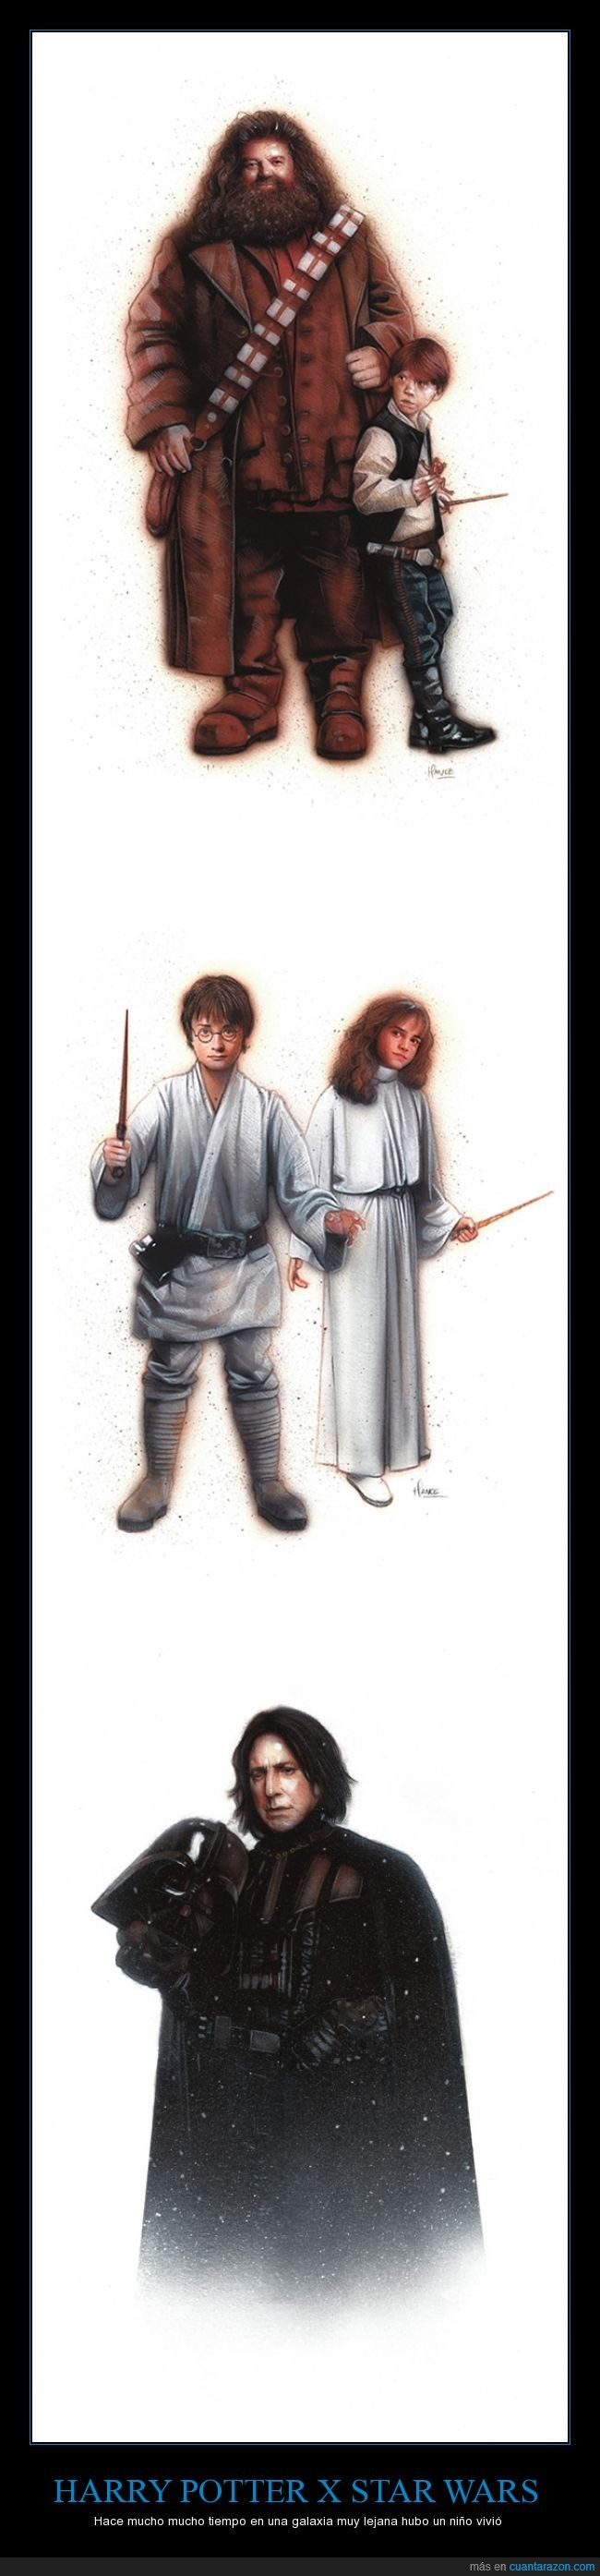 chewbacca,darth vader,hagrid,harry potter,hermione,ron,snape,star wars